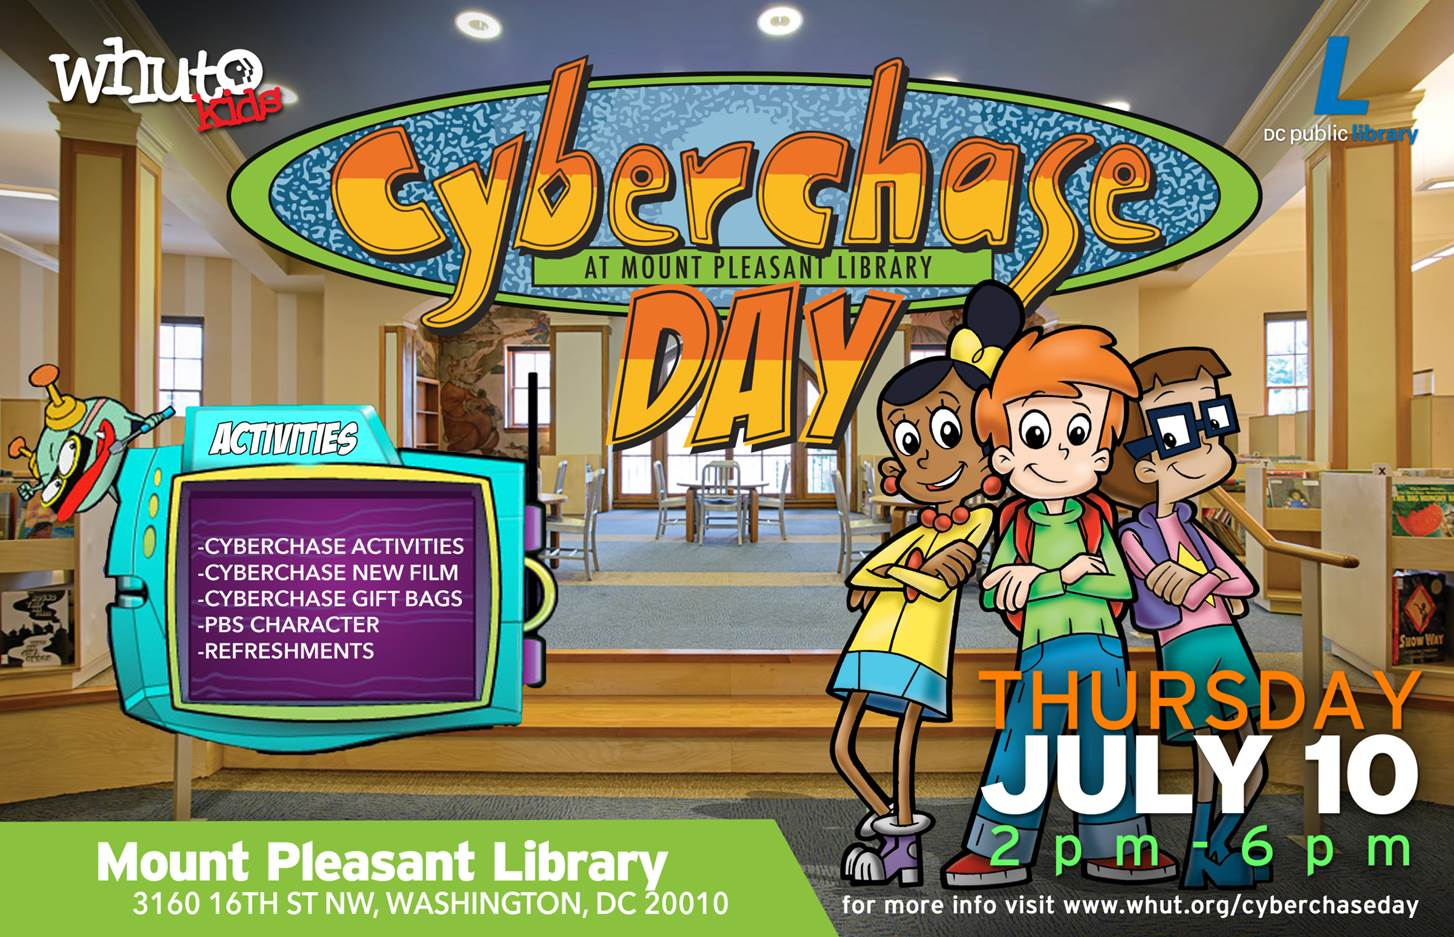 Cyberchase Day District Of Columbia Public Library